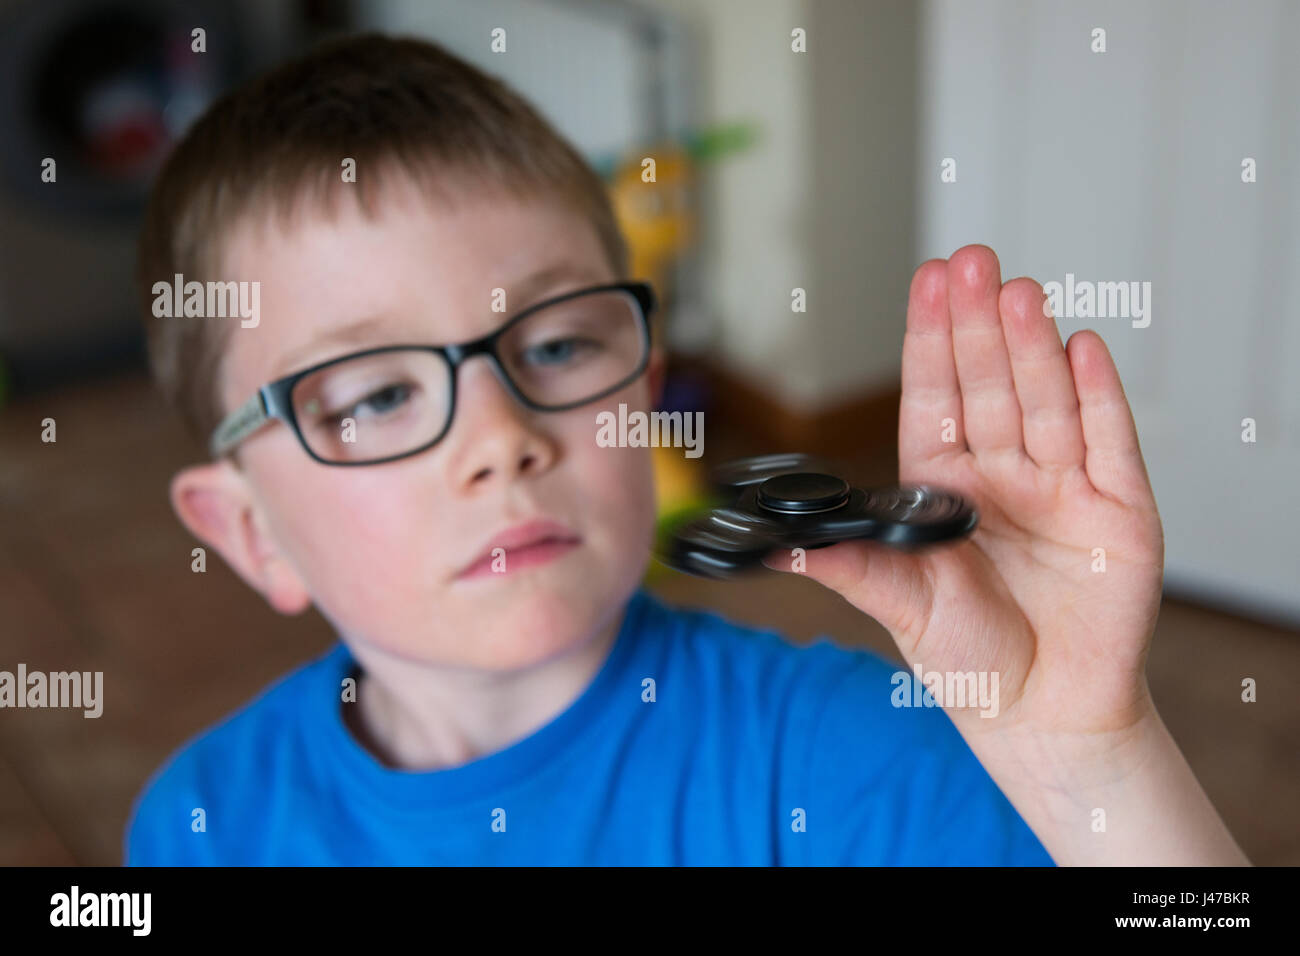 A closeup crop of a young boy spinning a black fidget spinner on his thumb - Stock Image